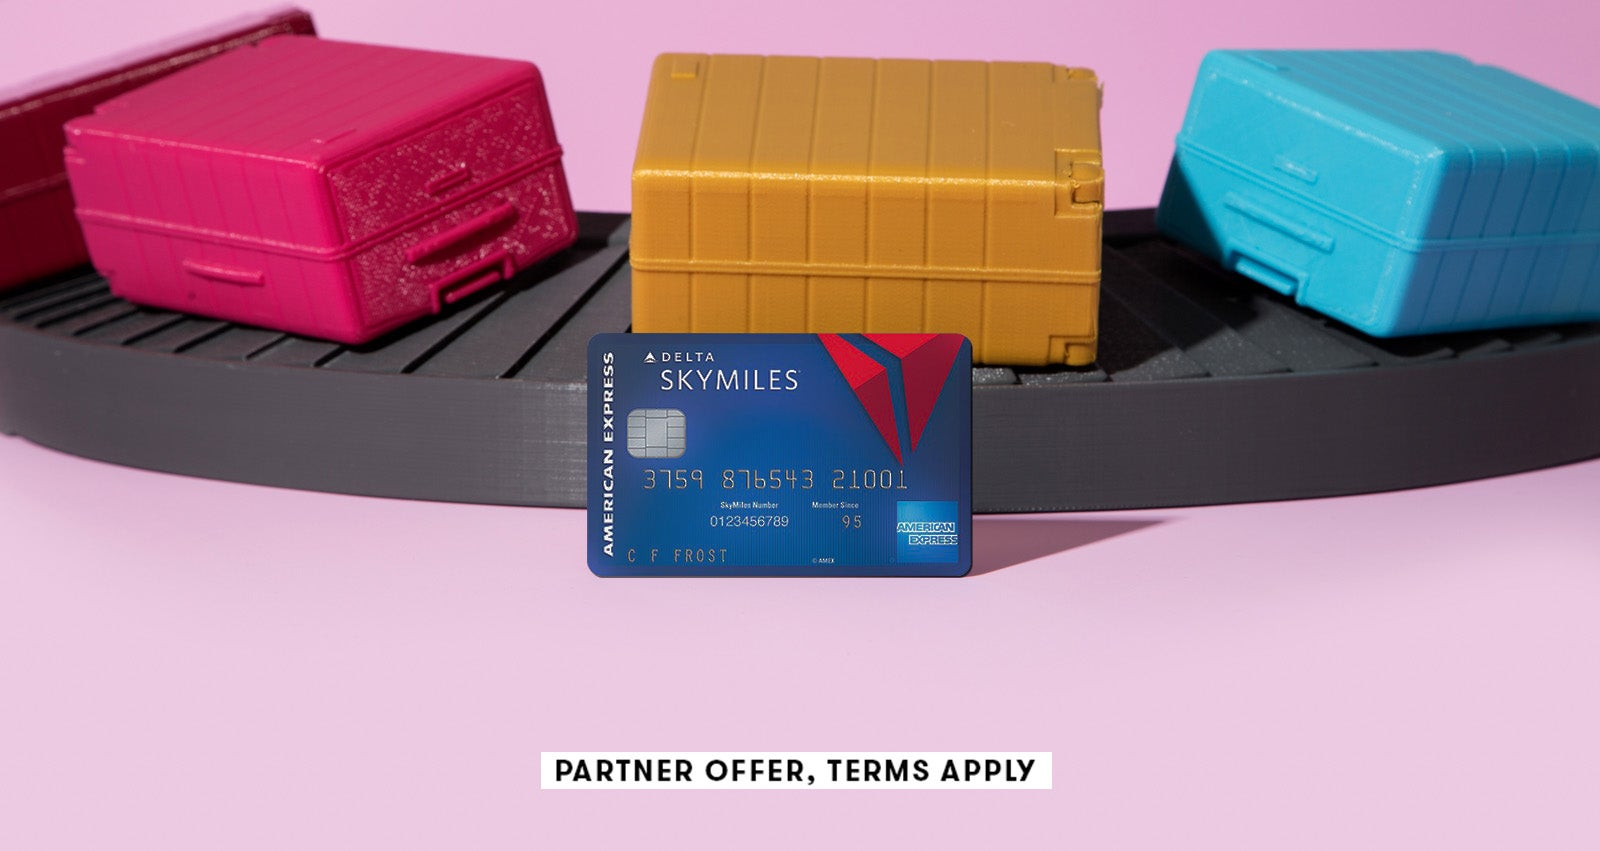 Blue Delta Skymiles American Express Credit Card Review